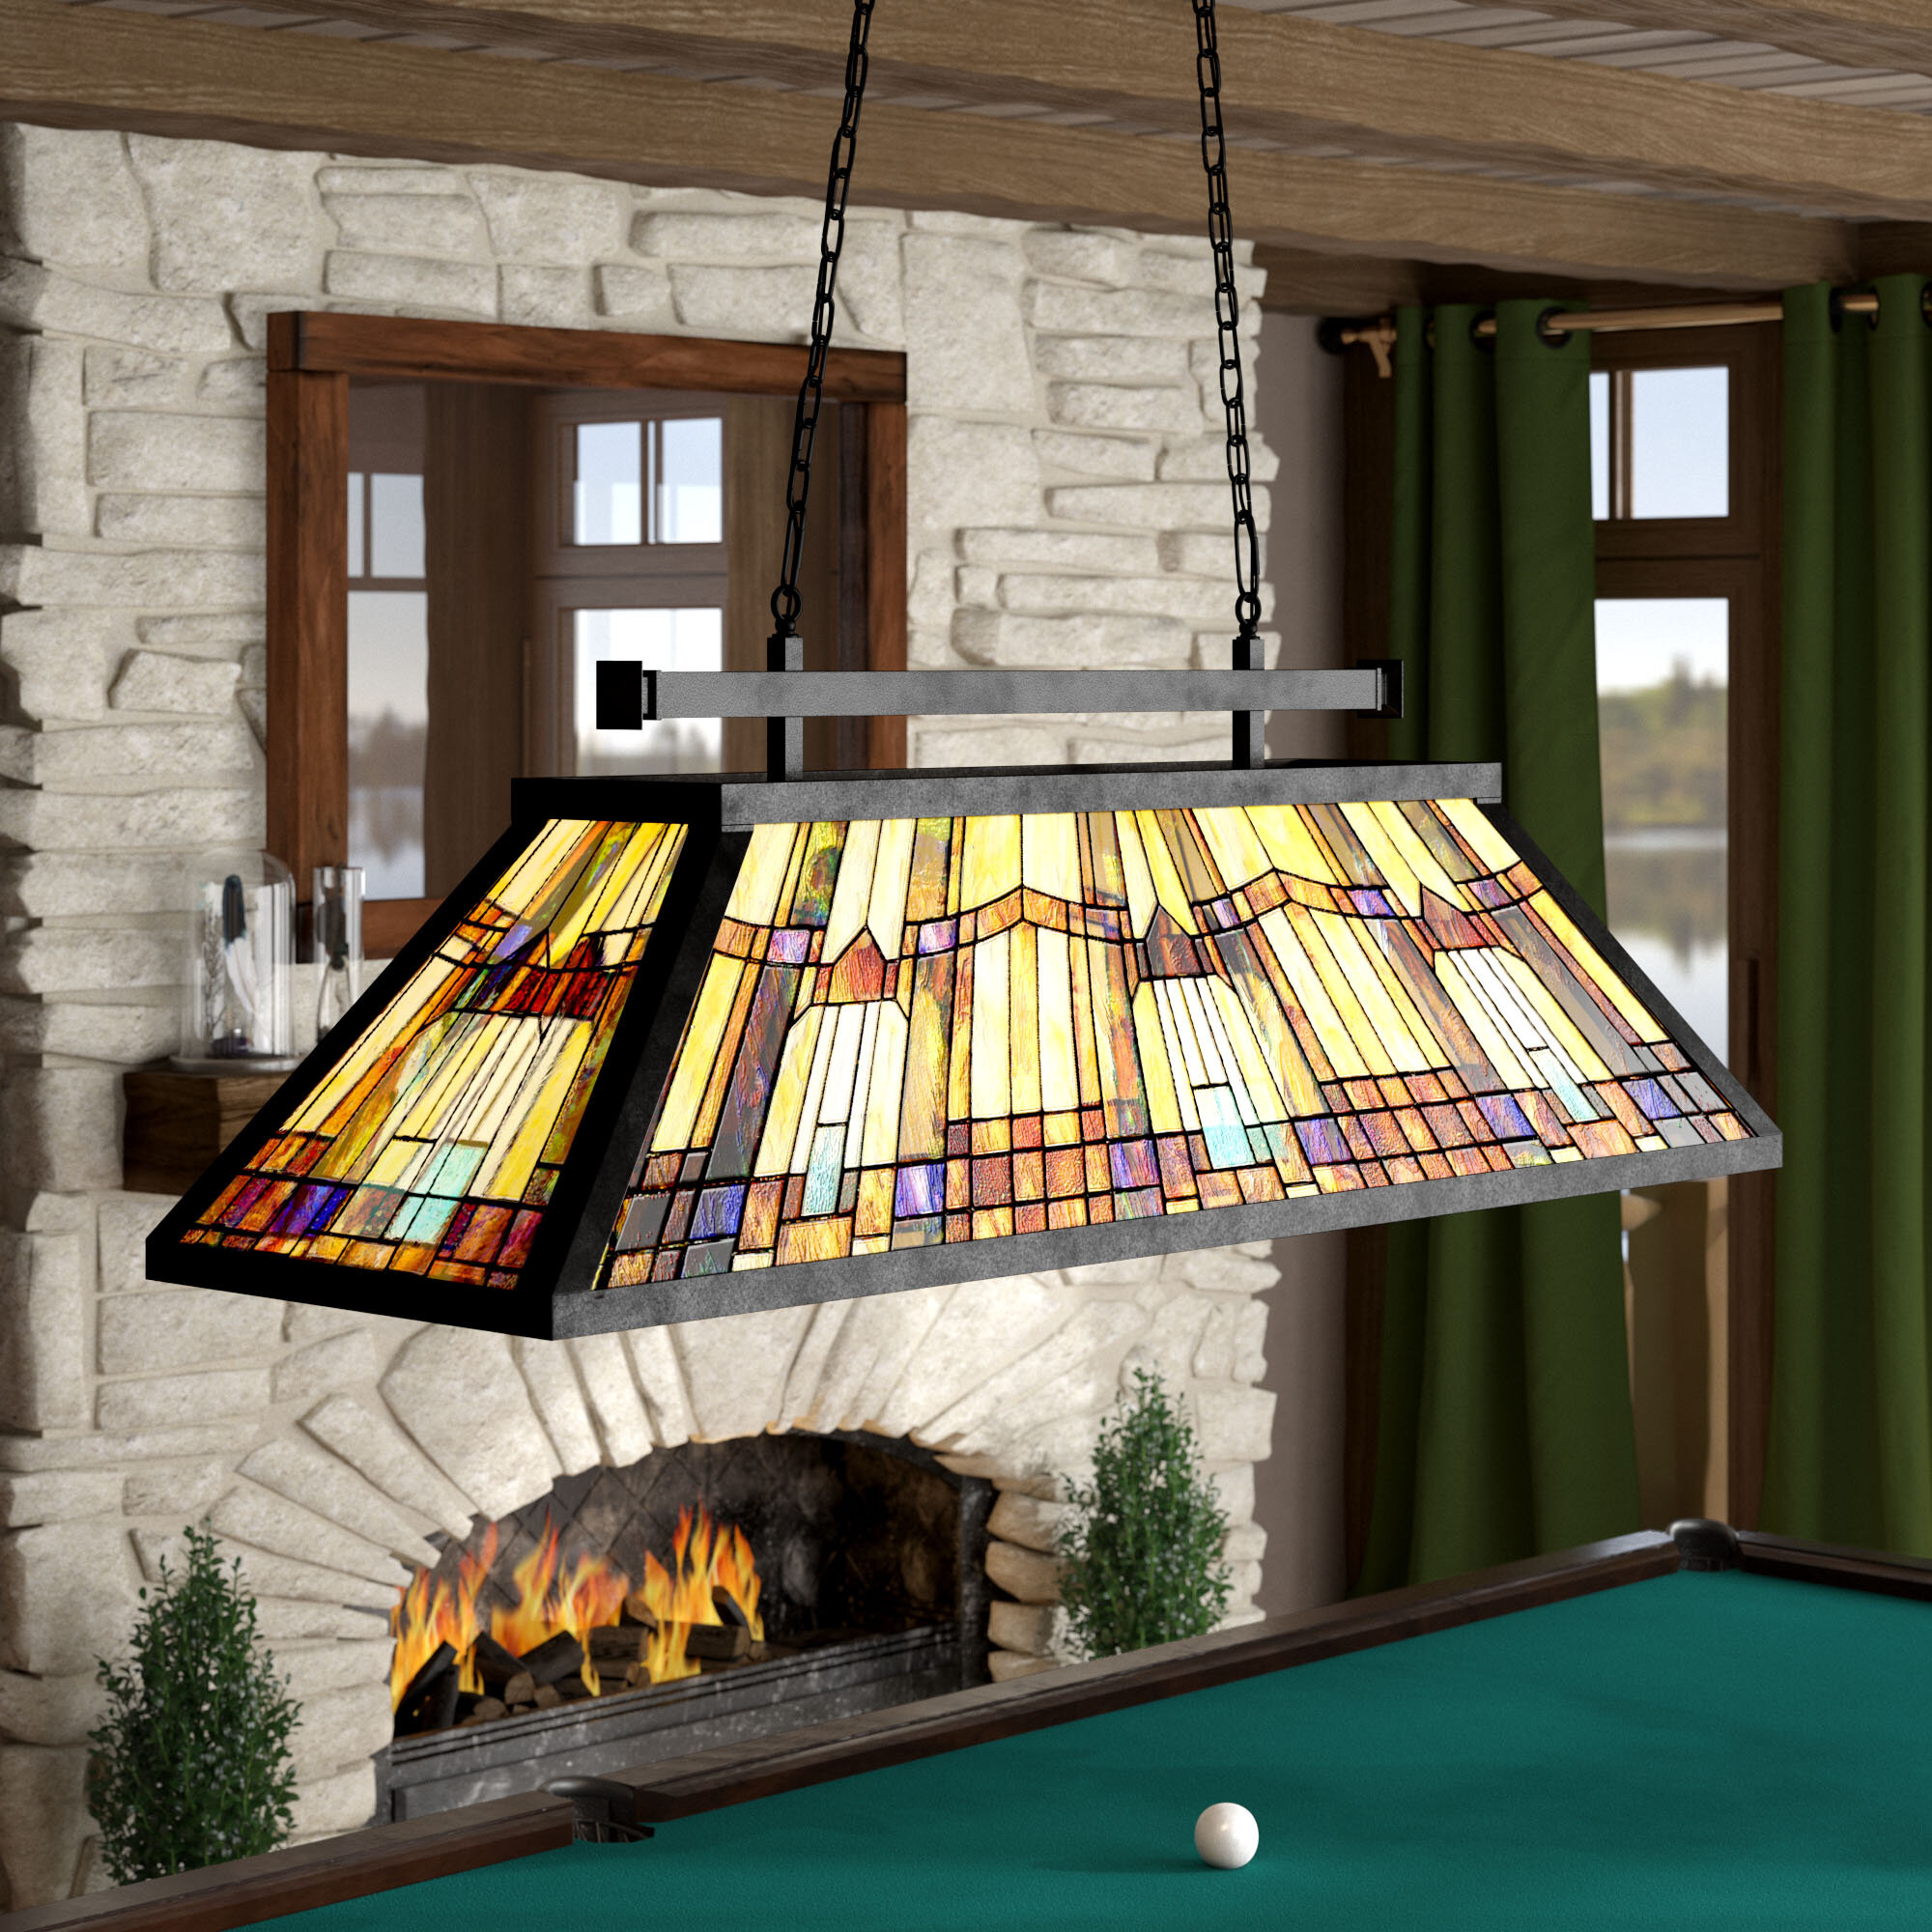 Pool Table Lights - Up to 60% Off Through 9/29 | Wayfair